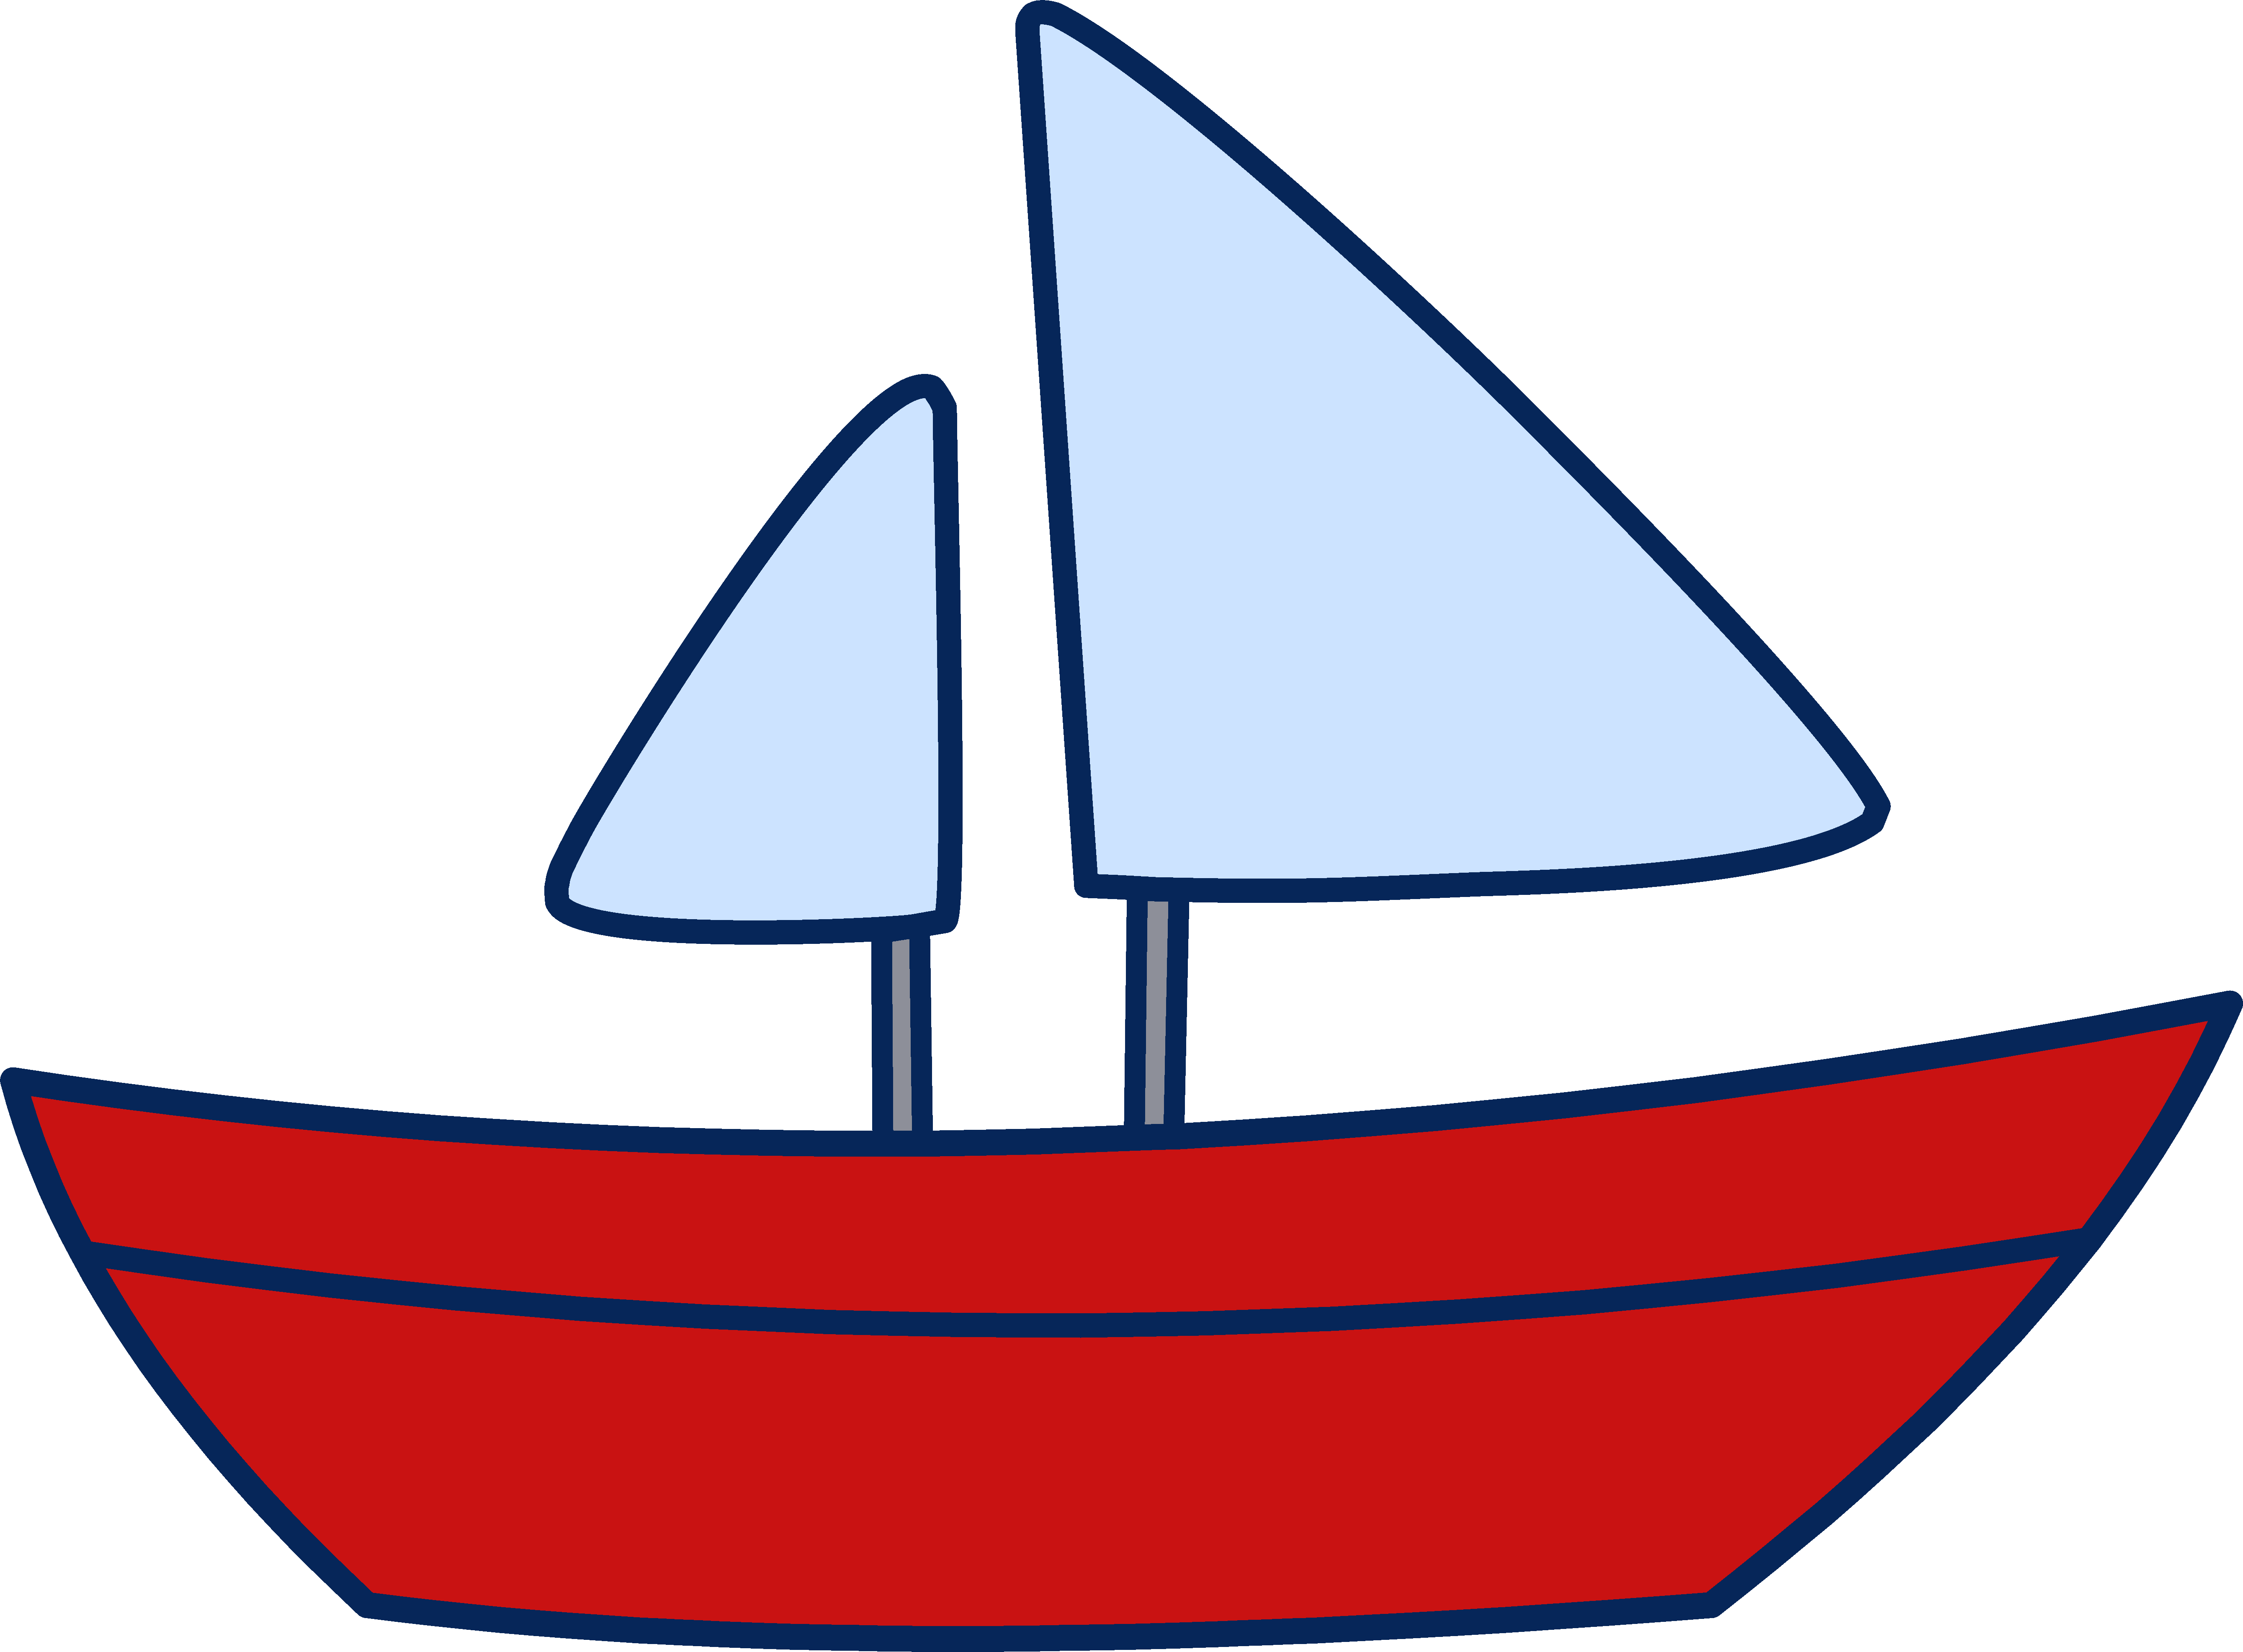 Images For Row Boat Clip Art-Images For Row Boat Clip Art-3